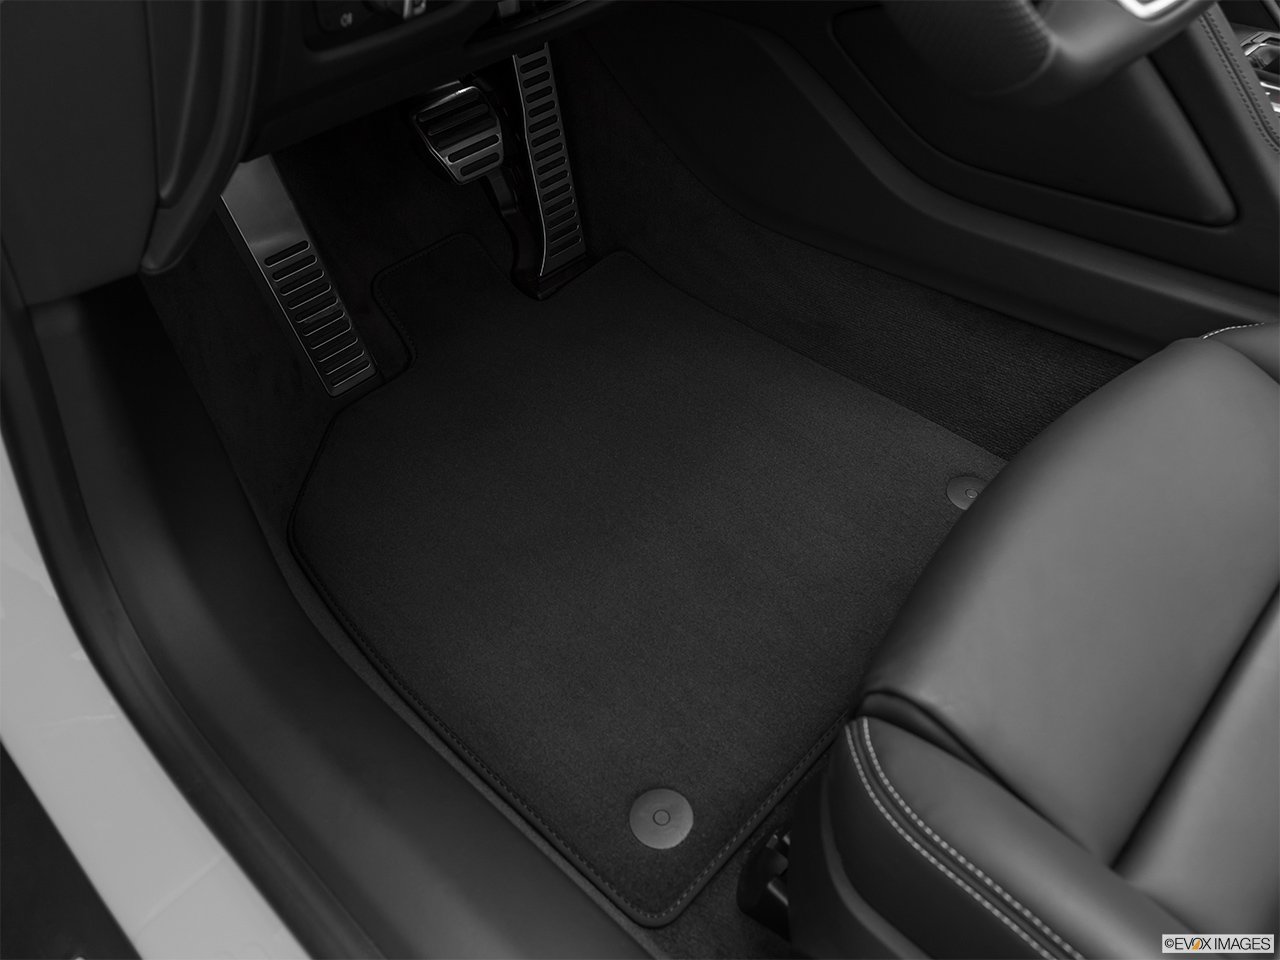 2020 Audi R8 Spyder V10 Driver's floor mat and pedals. Mid-seat level from outside looking in.